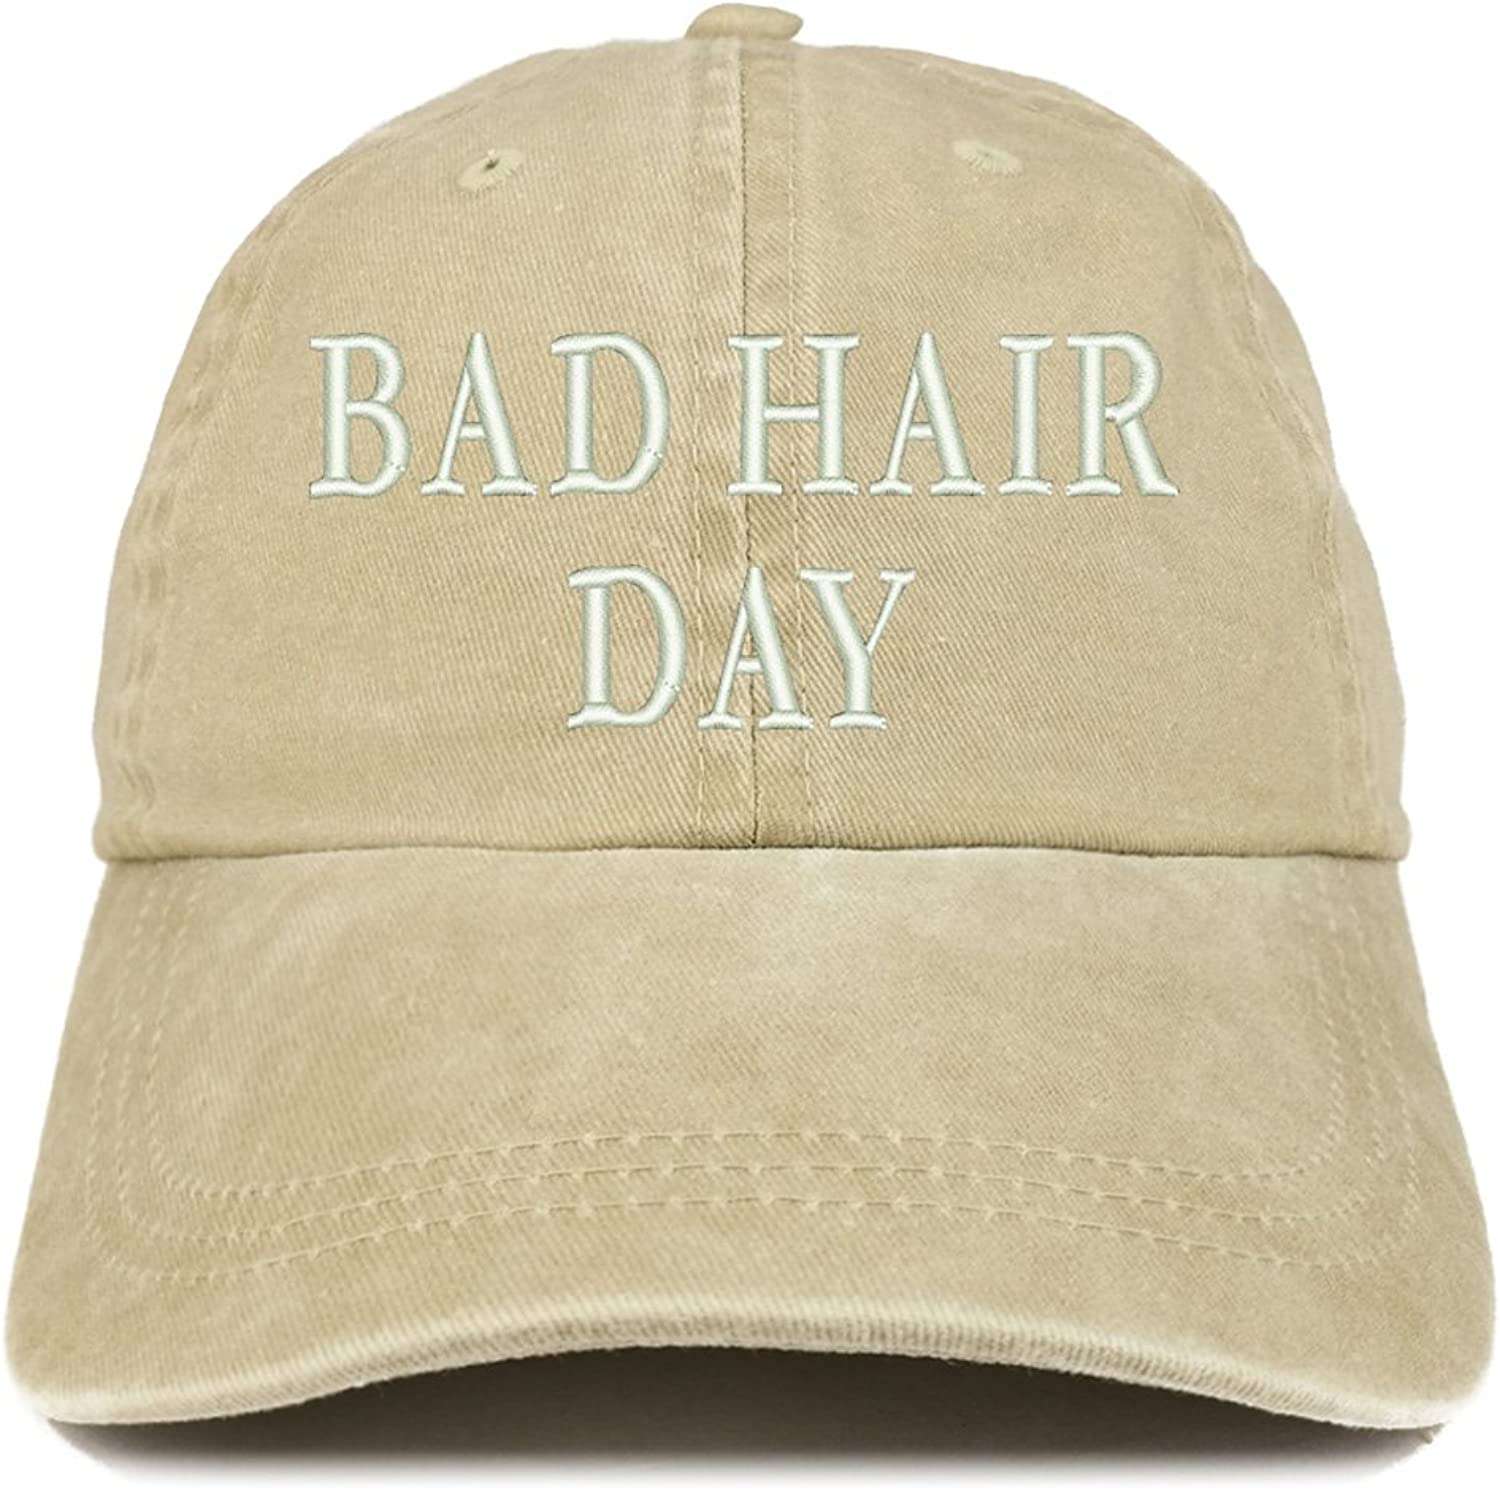 Trendy Apparel Shop Bad Hair Day Embroidered 100% Cotton Baseball Cap